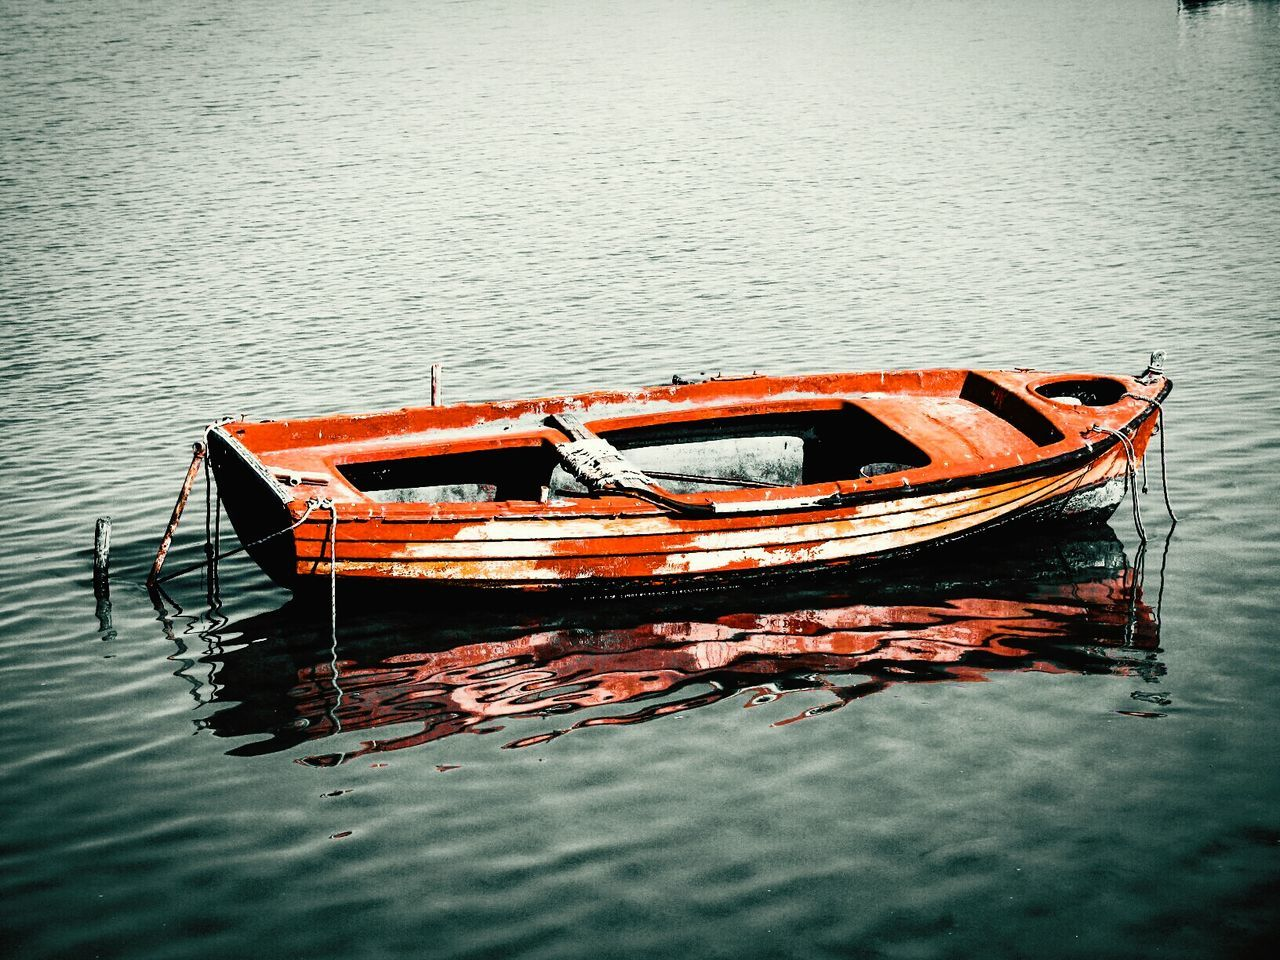 Boat Old Boat Abandoned Abandoned Boat Red Red Boat Carmine Sea Calm Sea A Moment Of Zen... Tranquility Tranquil Scene Peace And Quiet Fine Art Wallpaper Water Reflections Reflections Reflected Glory No People Shades Of Red Fine Art Photography My Boat On The River Fishing Boat Transportation